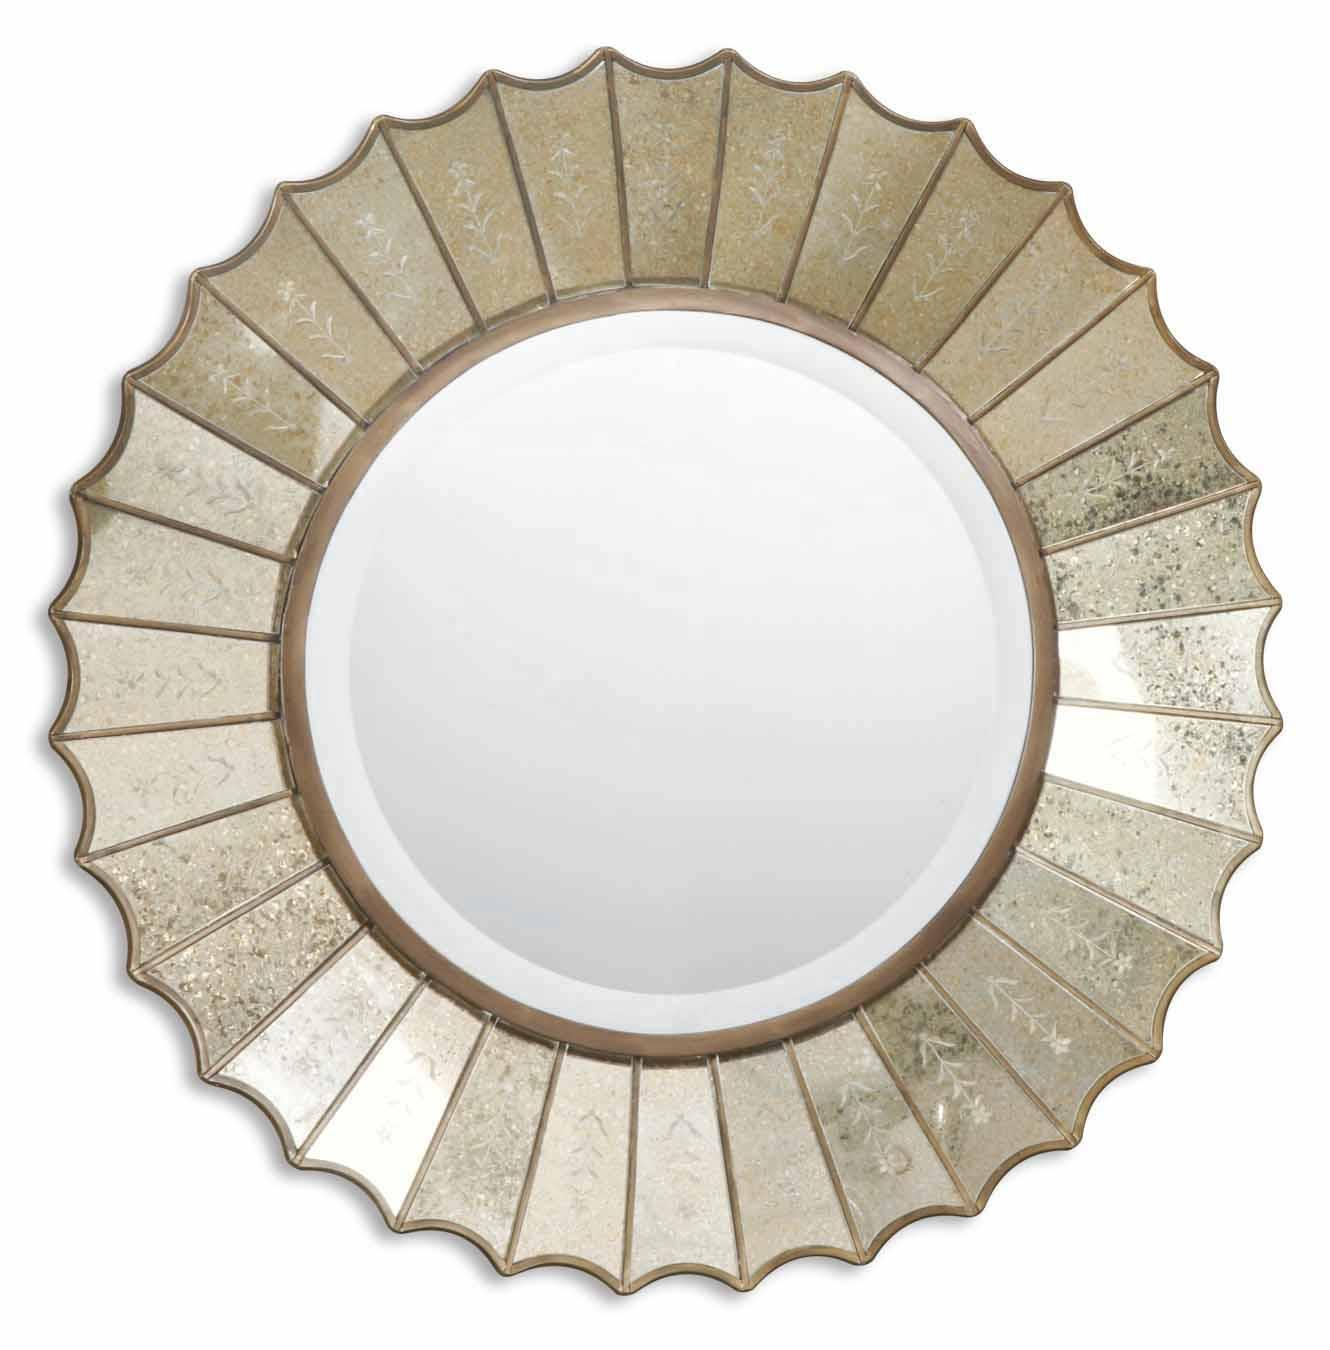 Uttermost Mirrors Amberlyn Mirror - Item Number: 08028 B